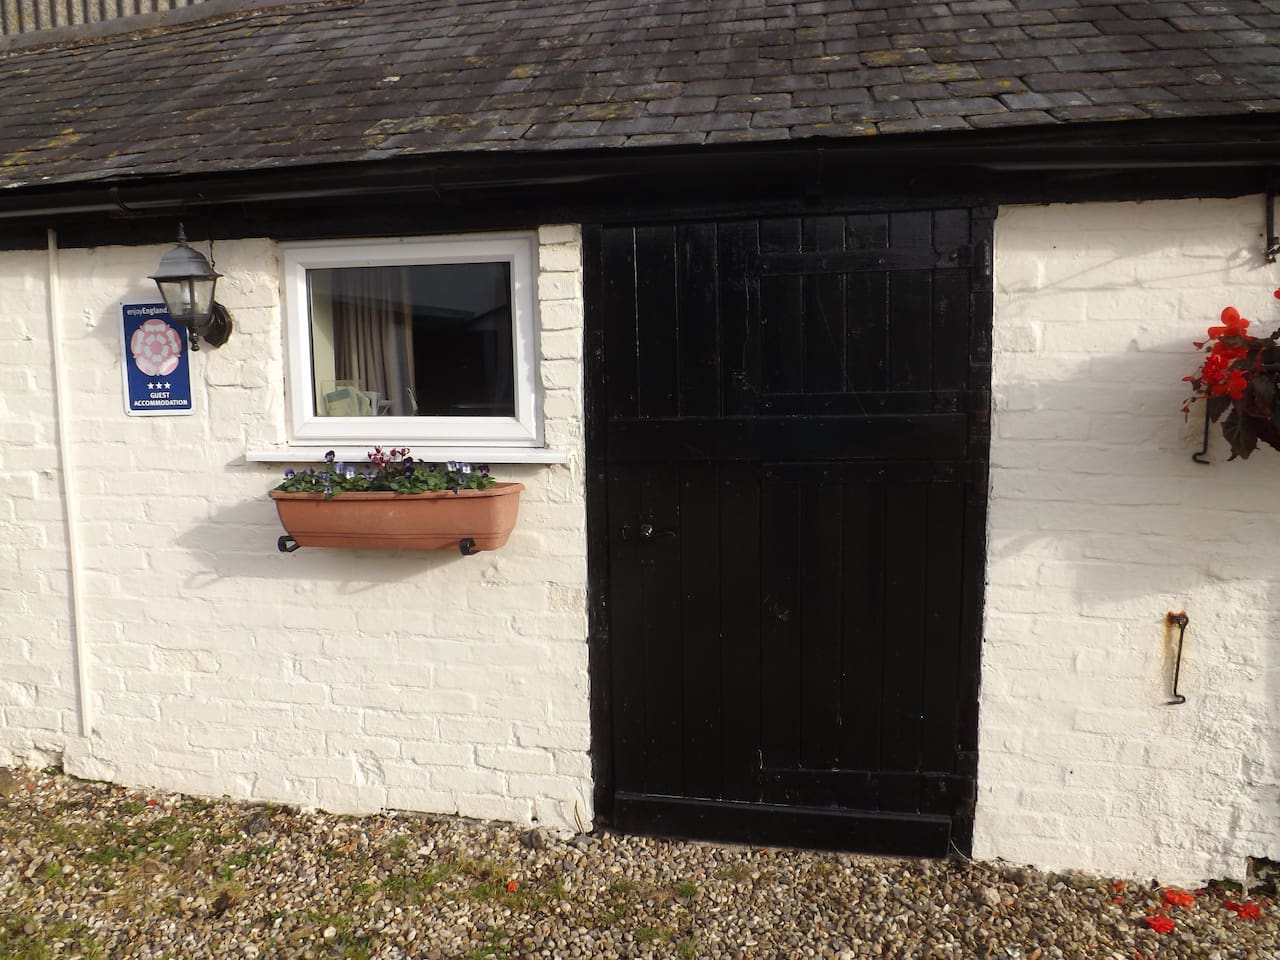 Welcome to The Nook at West Langton Lodge